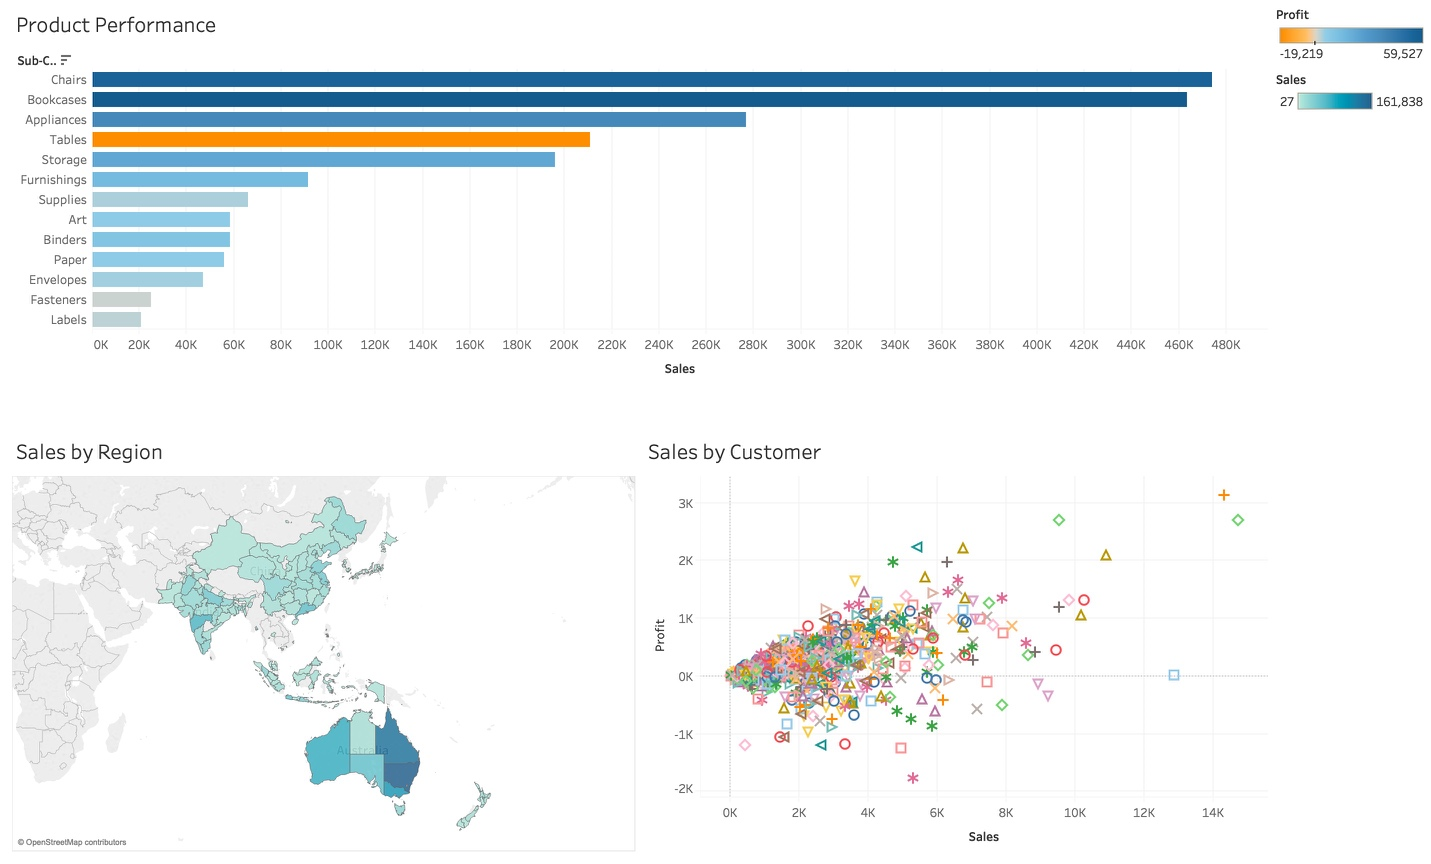 Opening the Tableau Desktop, the data from the exported .Hyper file contains precisely the data required for presentation – Product Performance, Sales by Region, and Sales by Customer